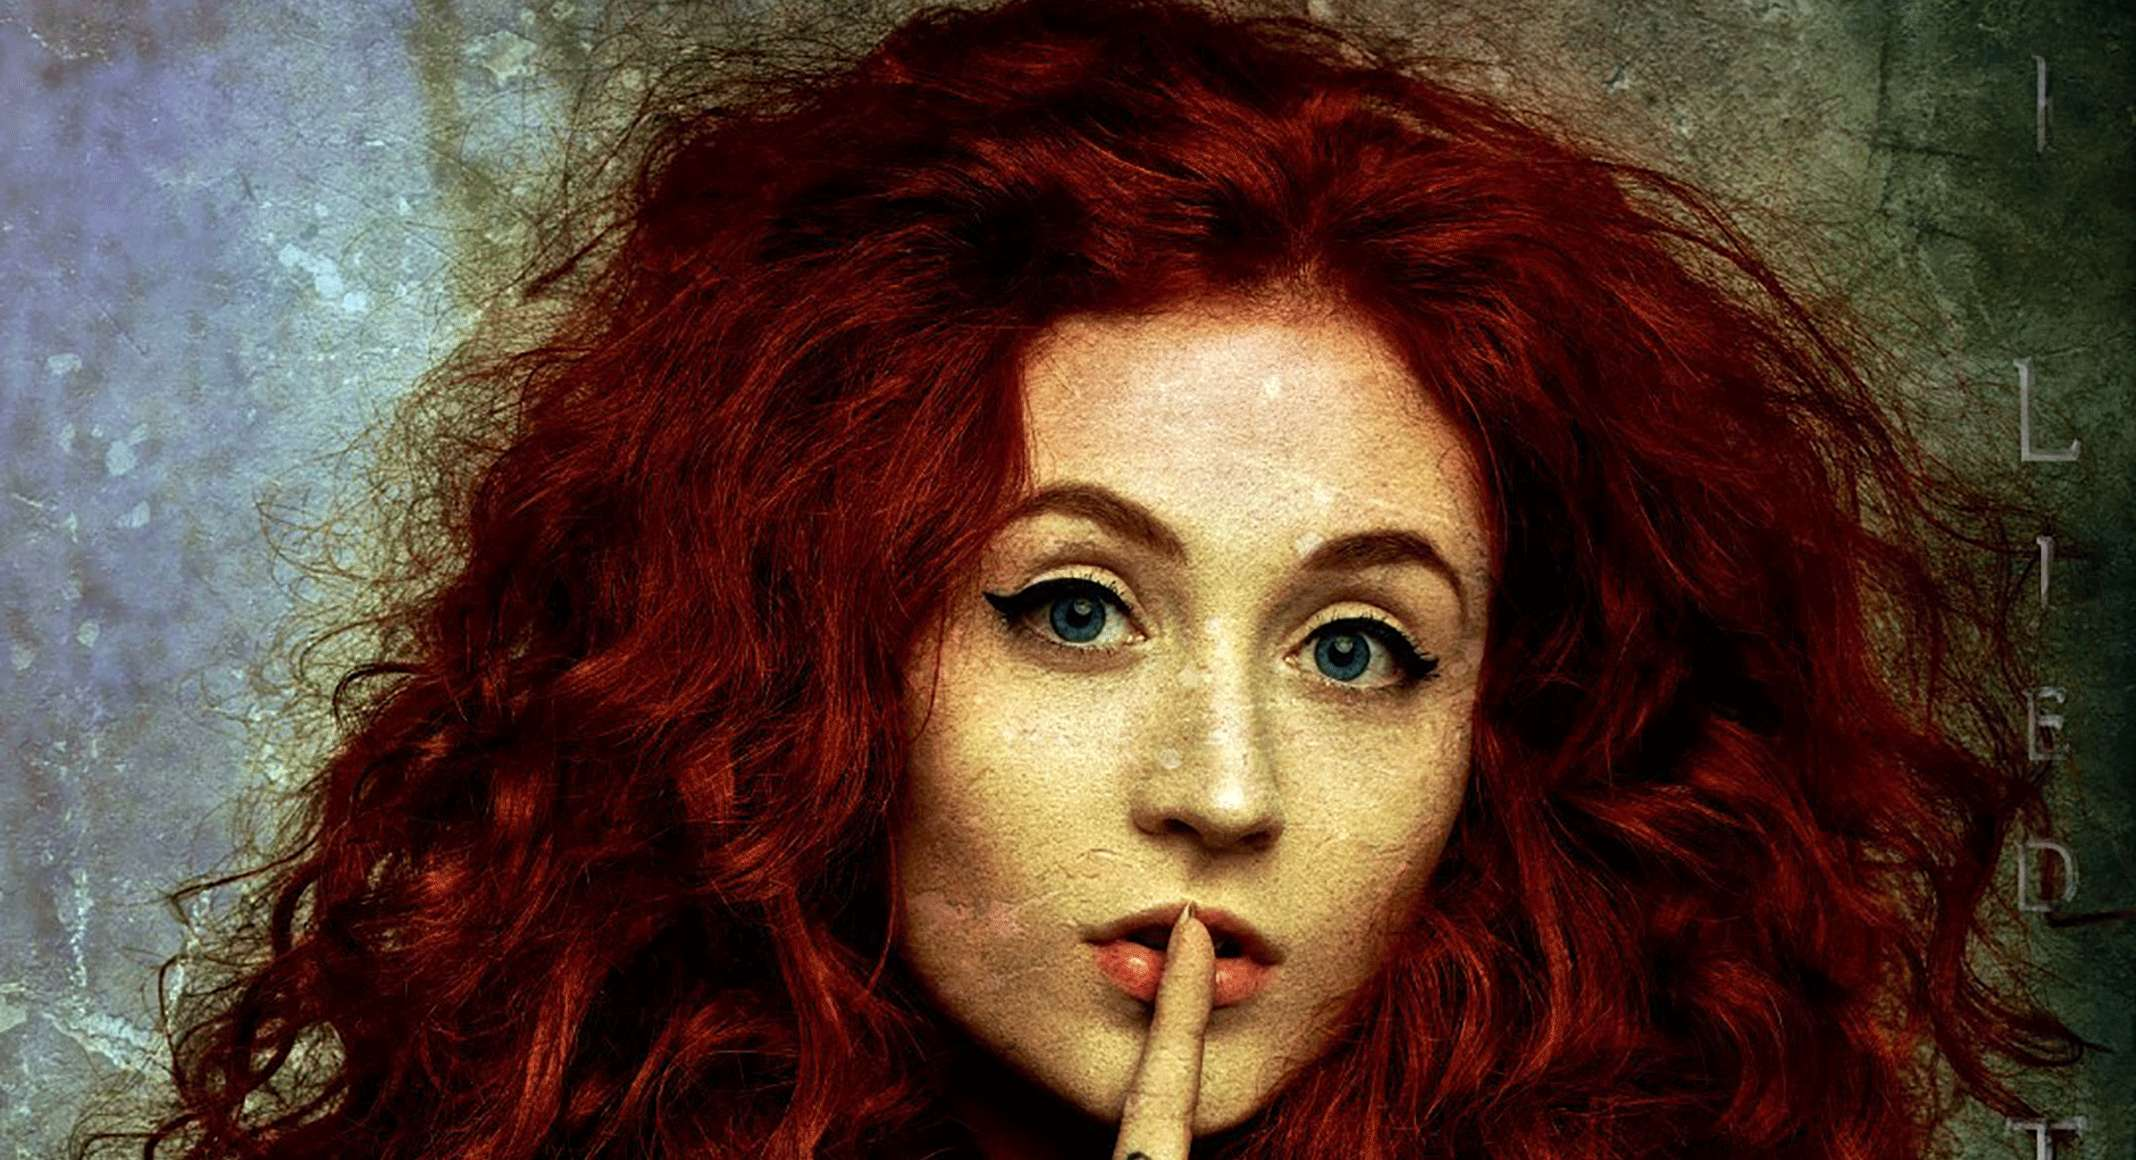 Janet Devlin returns with new single this Friday